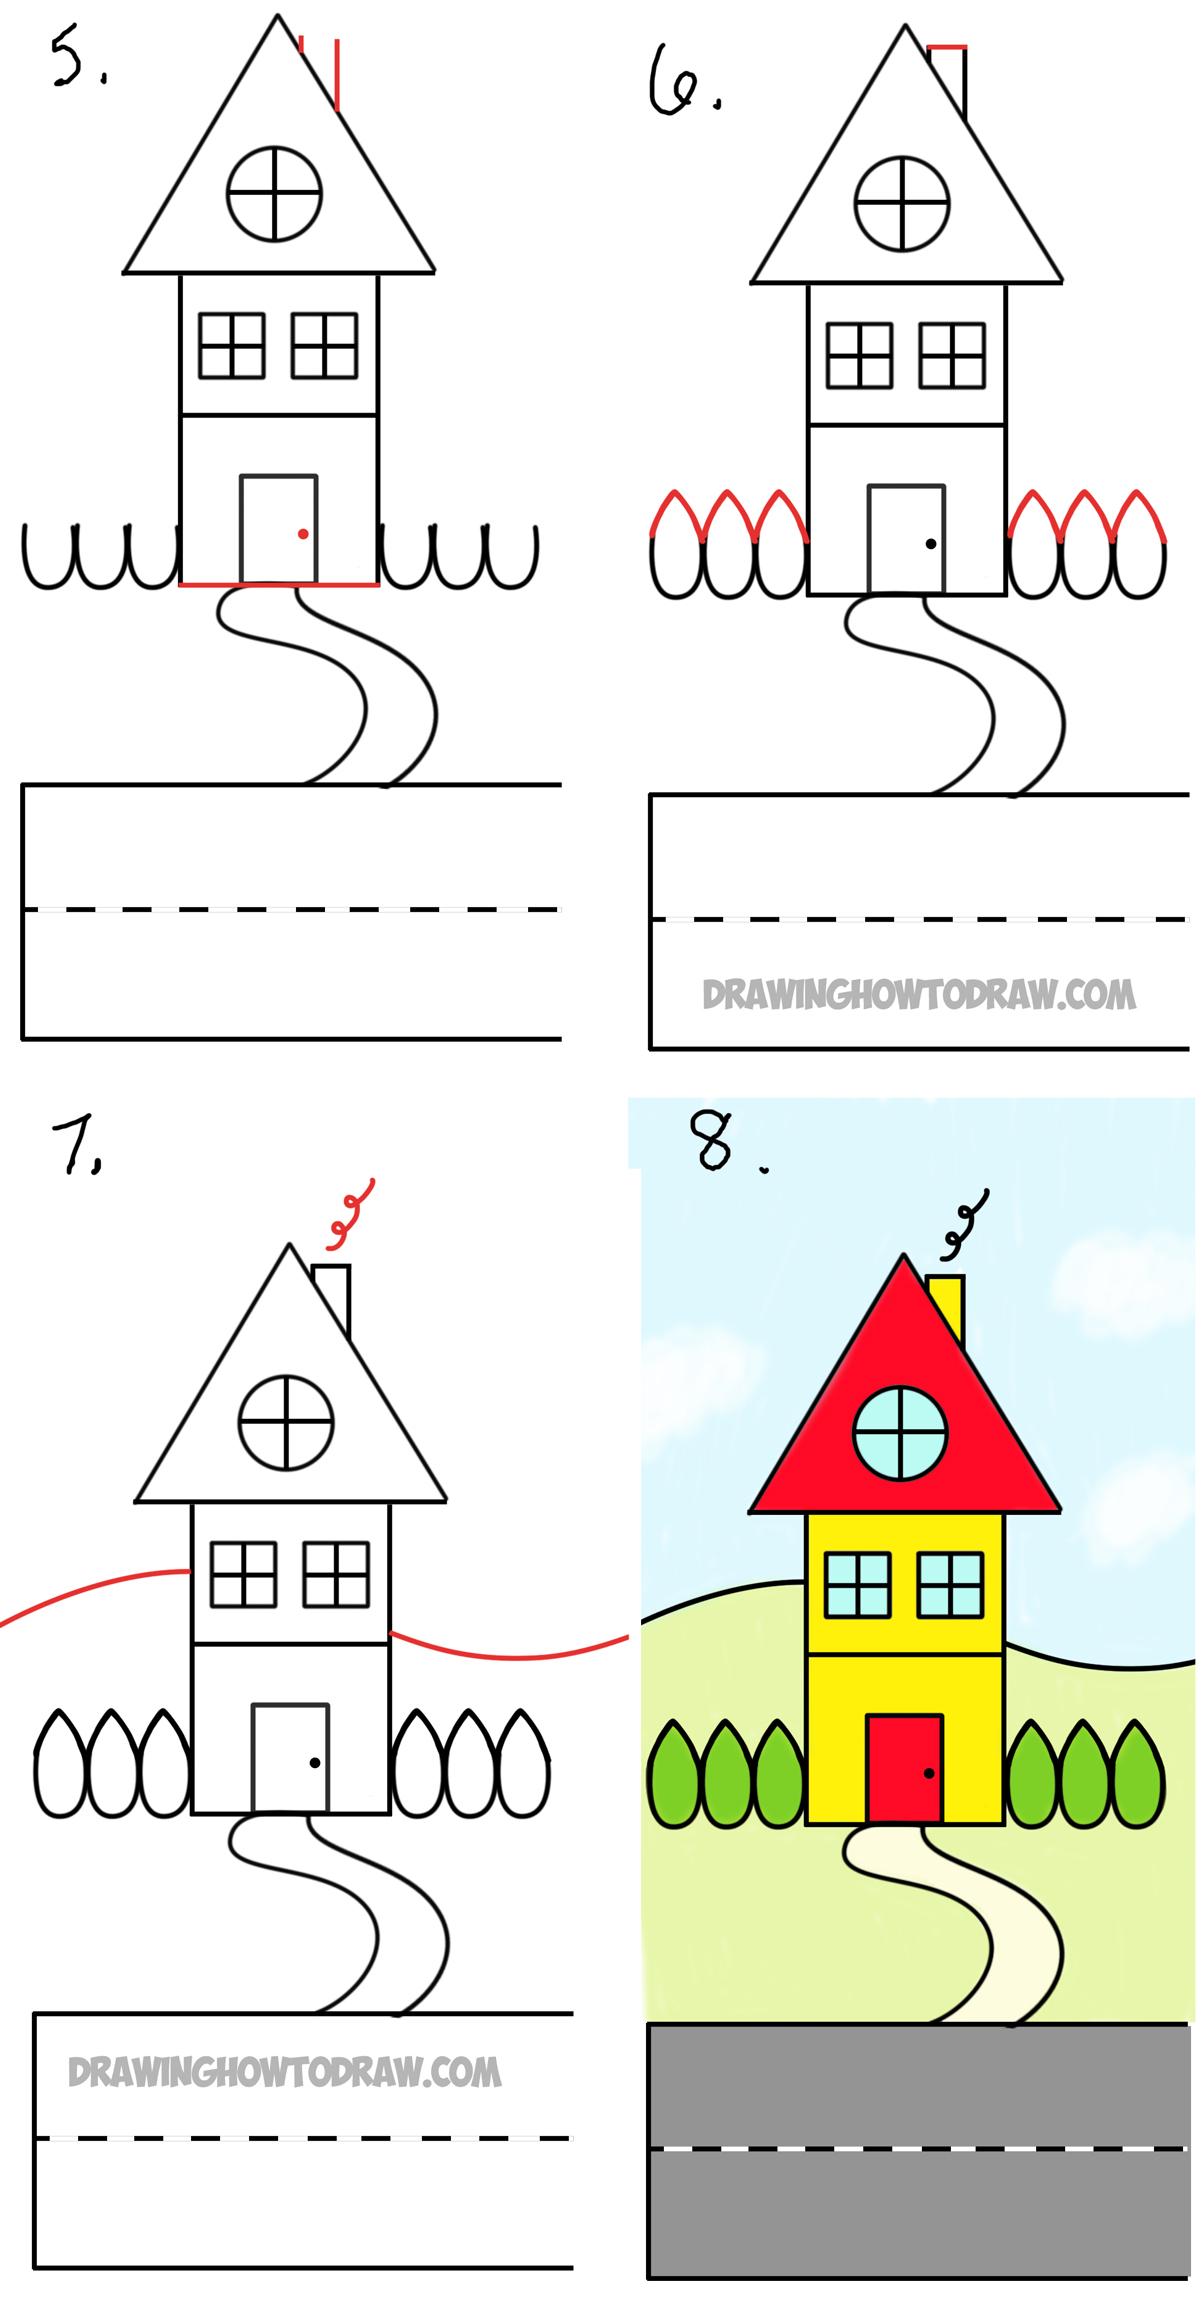 1200x2309 simple house drawing easy potos how to draw a cartoon house from - House Drawing Easy